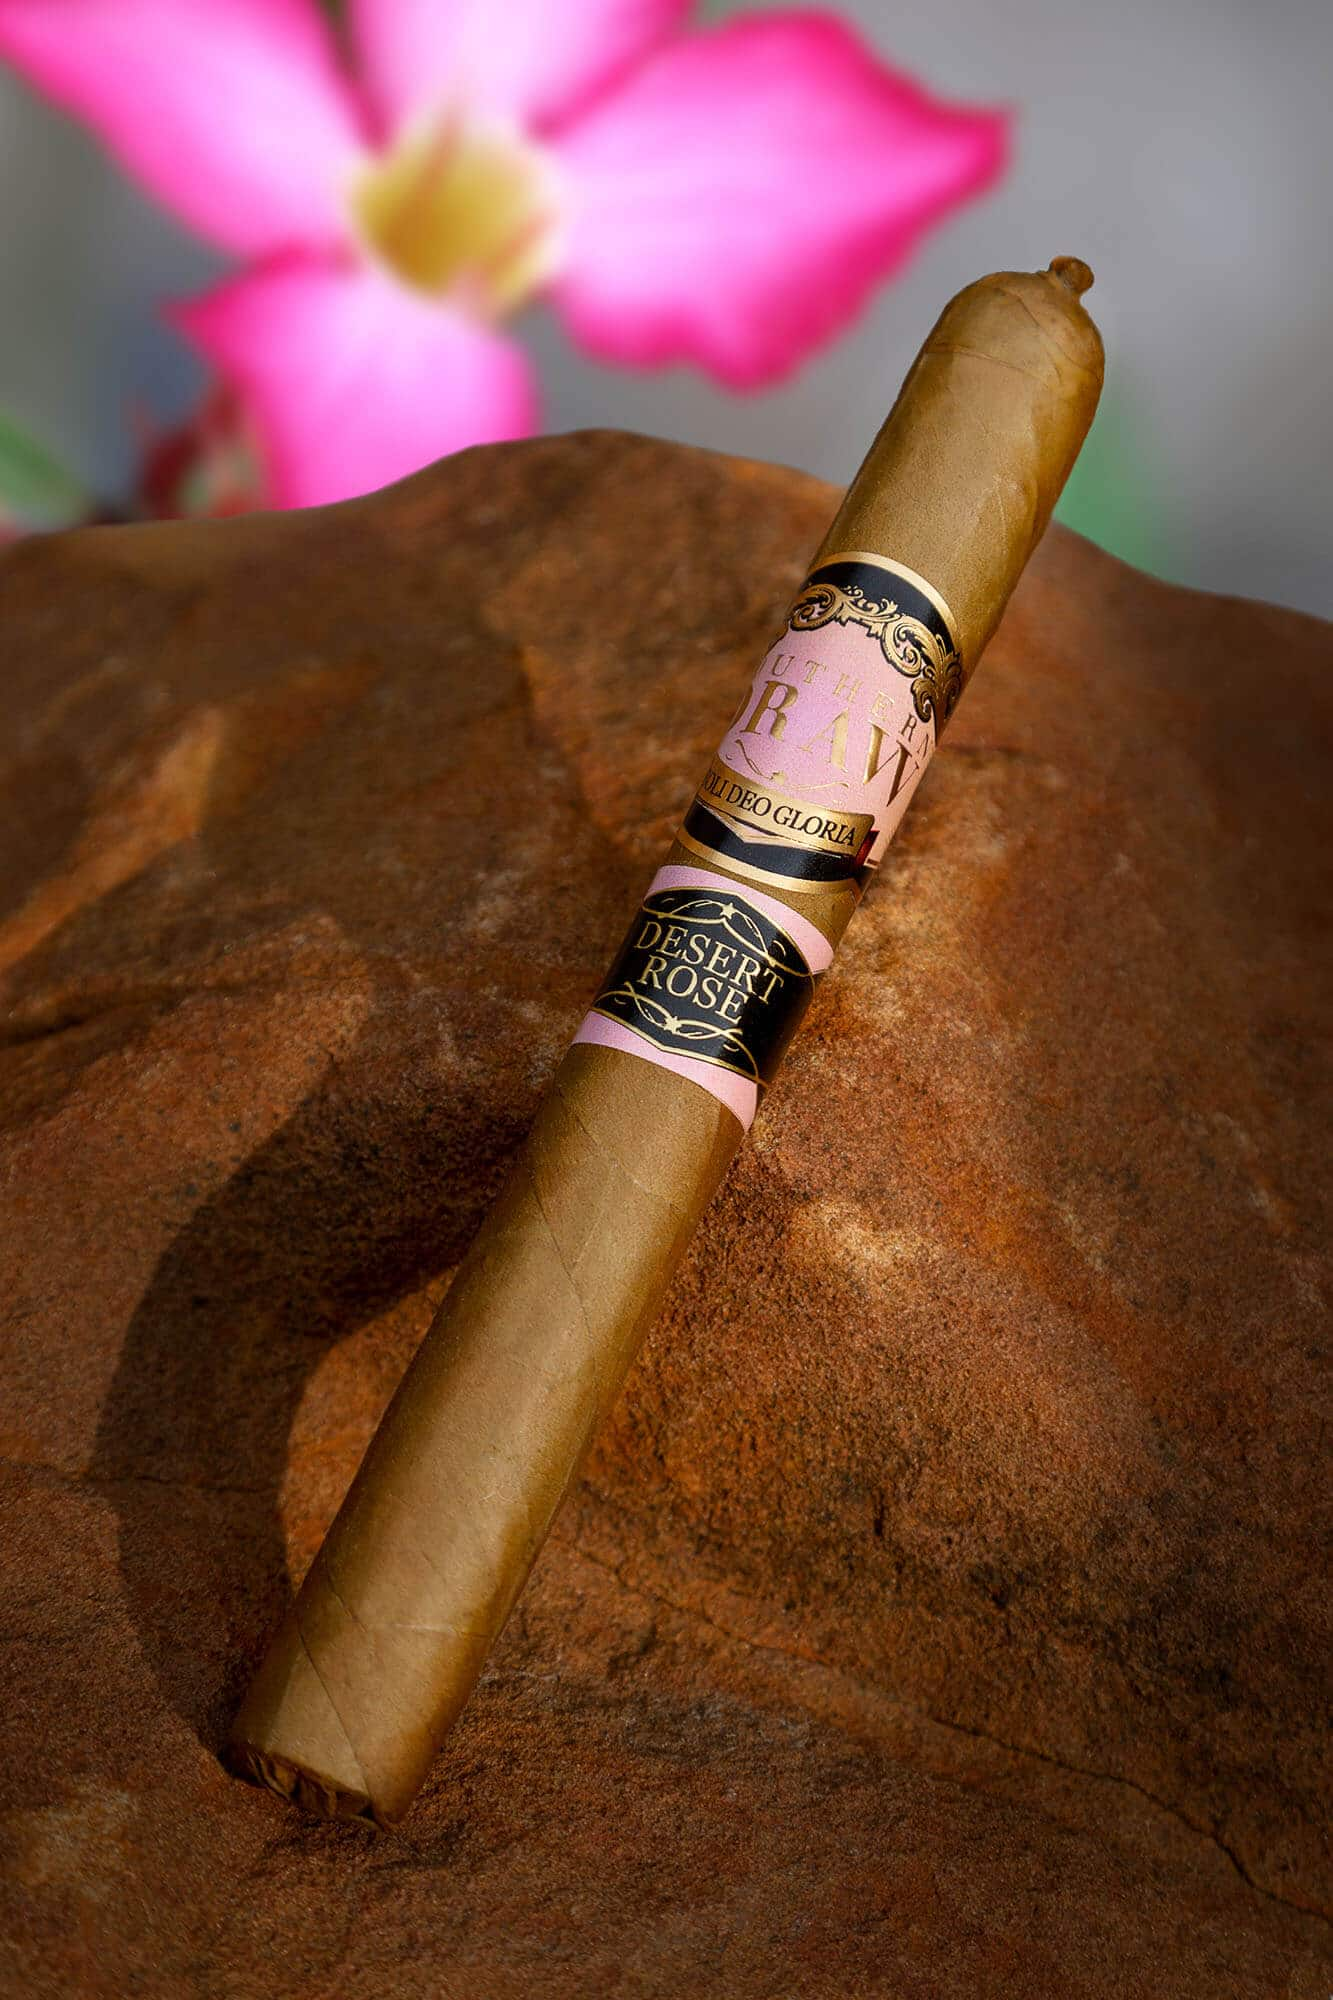 Cigar News: Two New Southern Draw Desert Roses are Blooming this Year